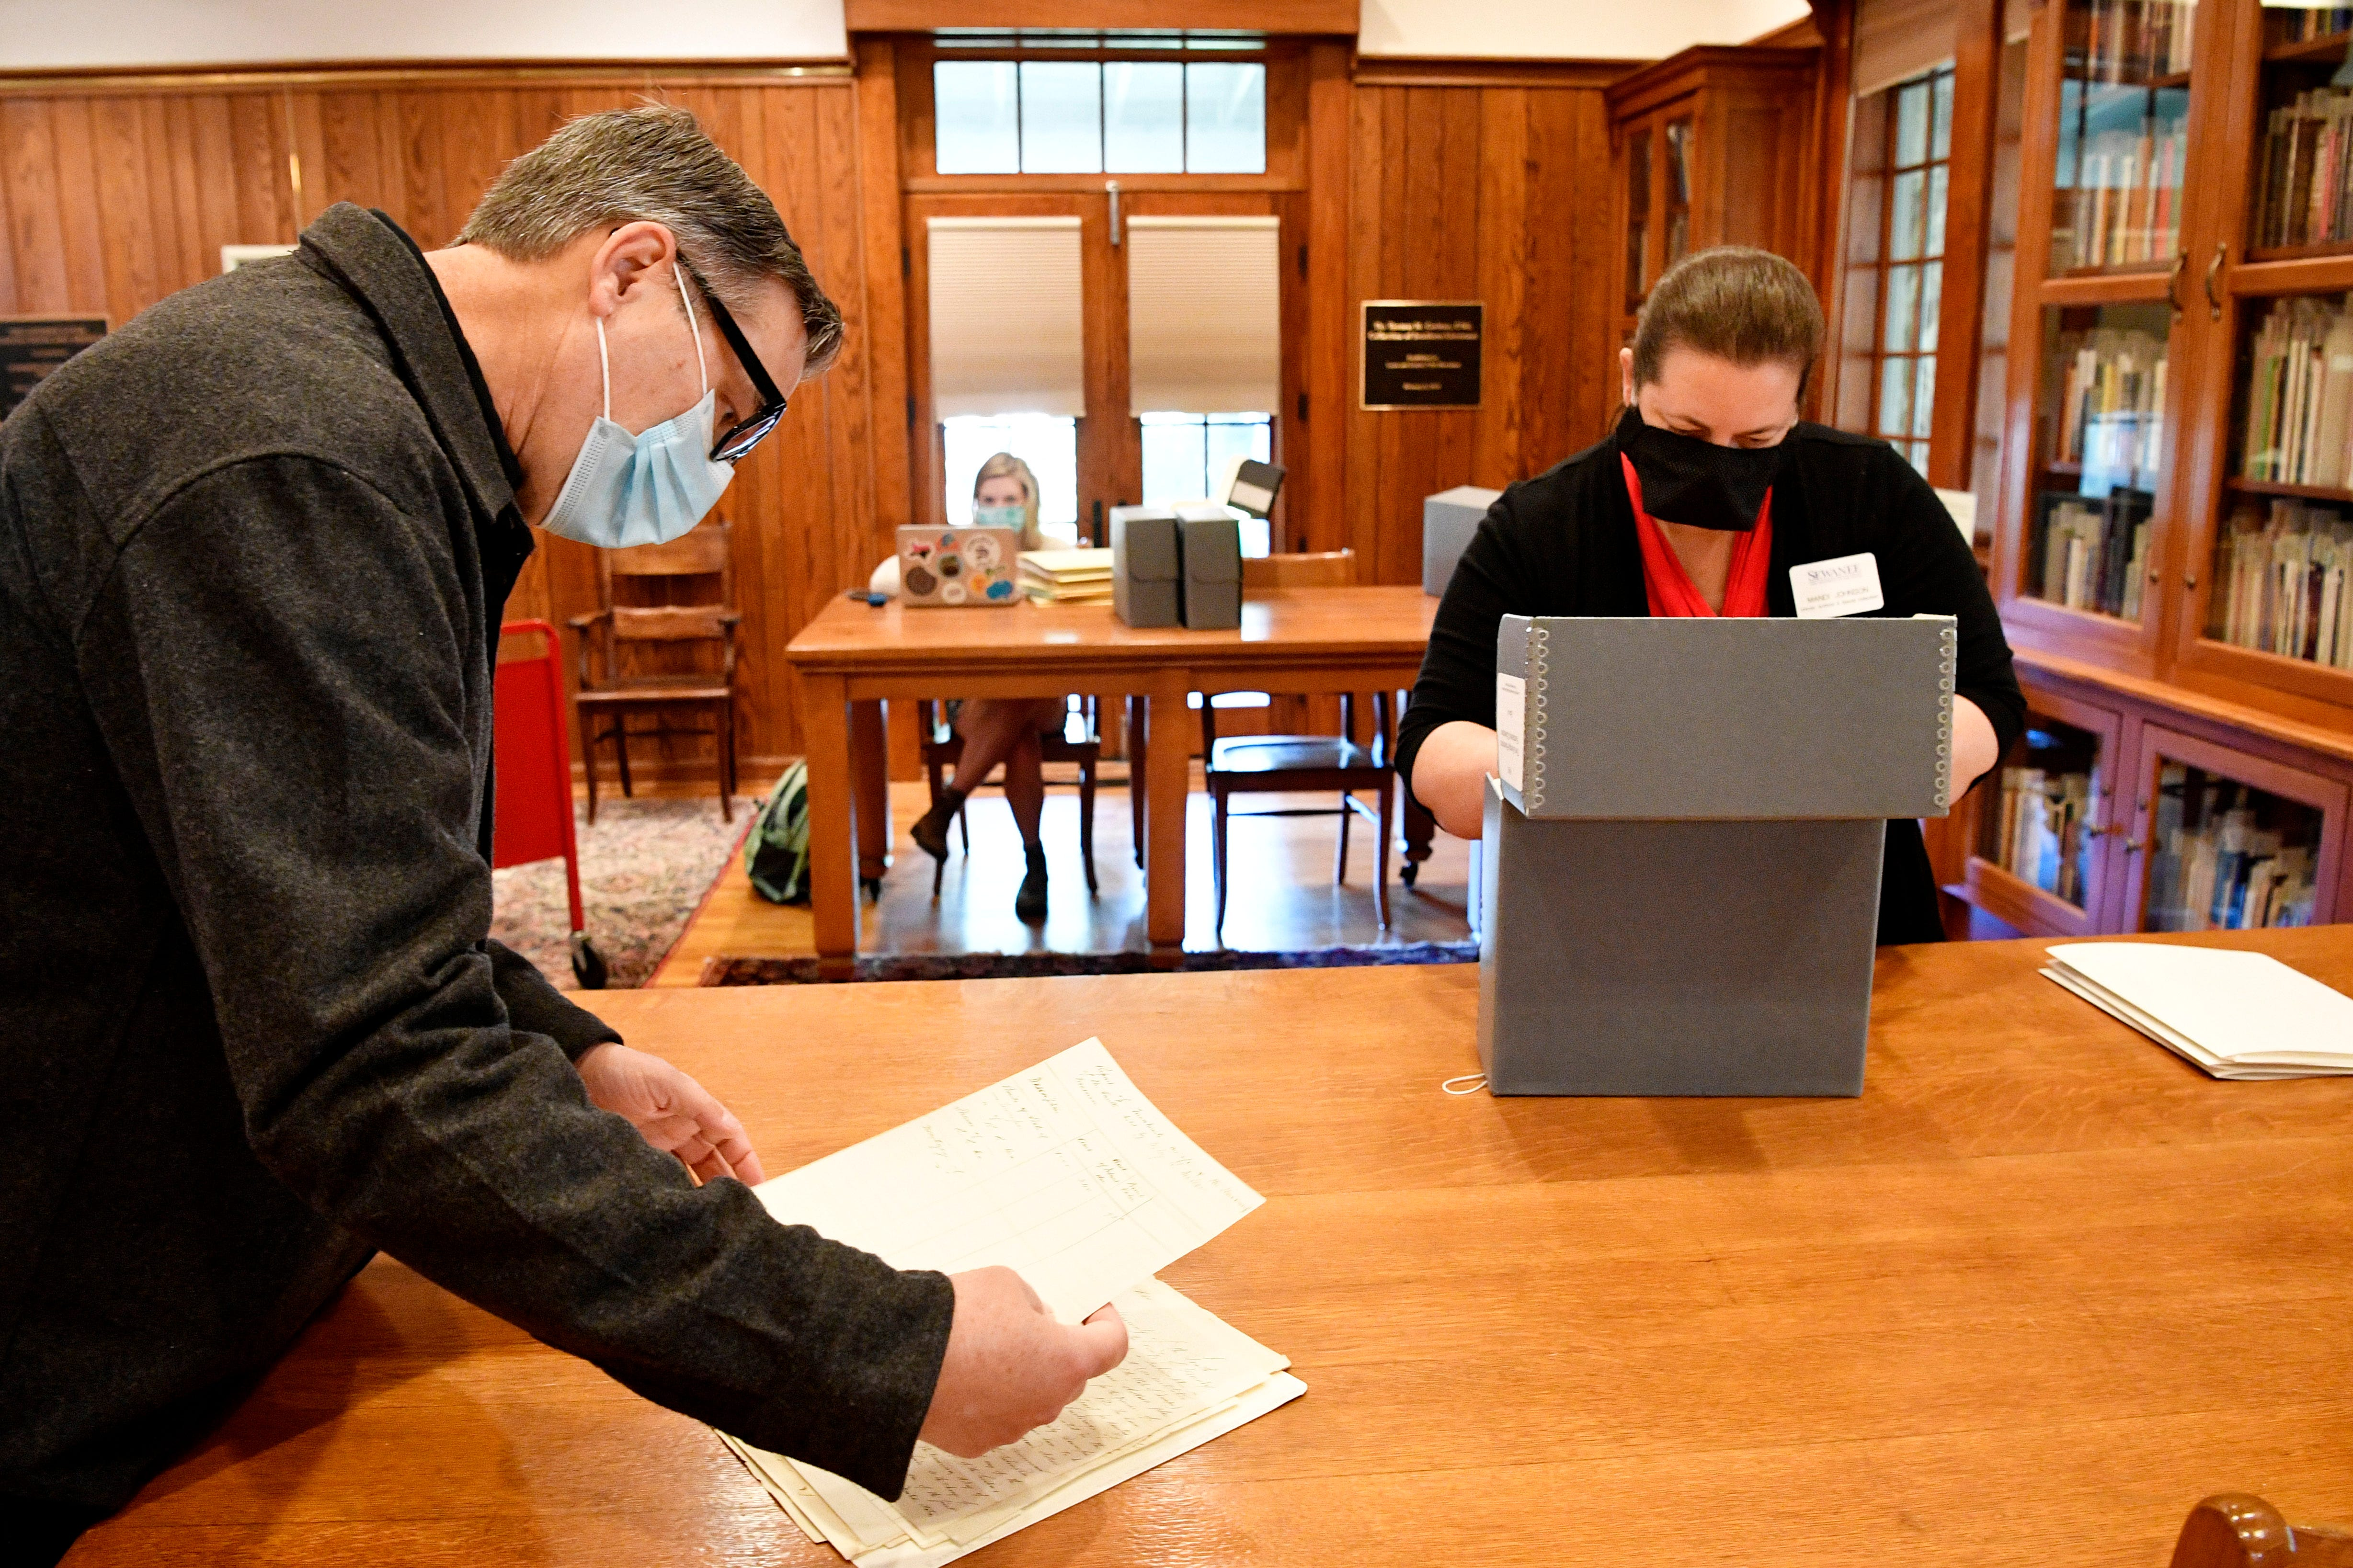 Sewanee History Professor Woody Register is leading the Roberson Project, which is examining The University of the South's ties to the Confederacy in Sewanee, Tenn. Tuesday, Sept. 22, 2020. Here he gets help from Director of the Archives Mindi Johnson.